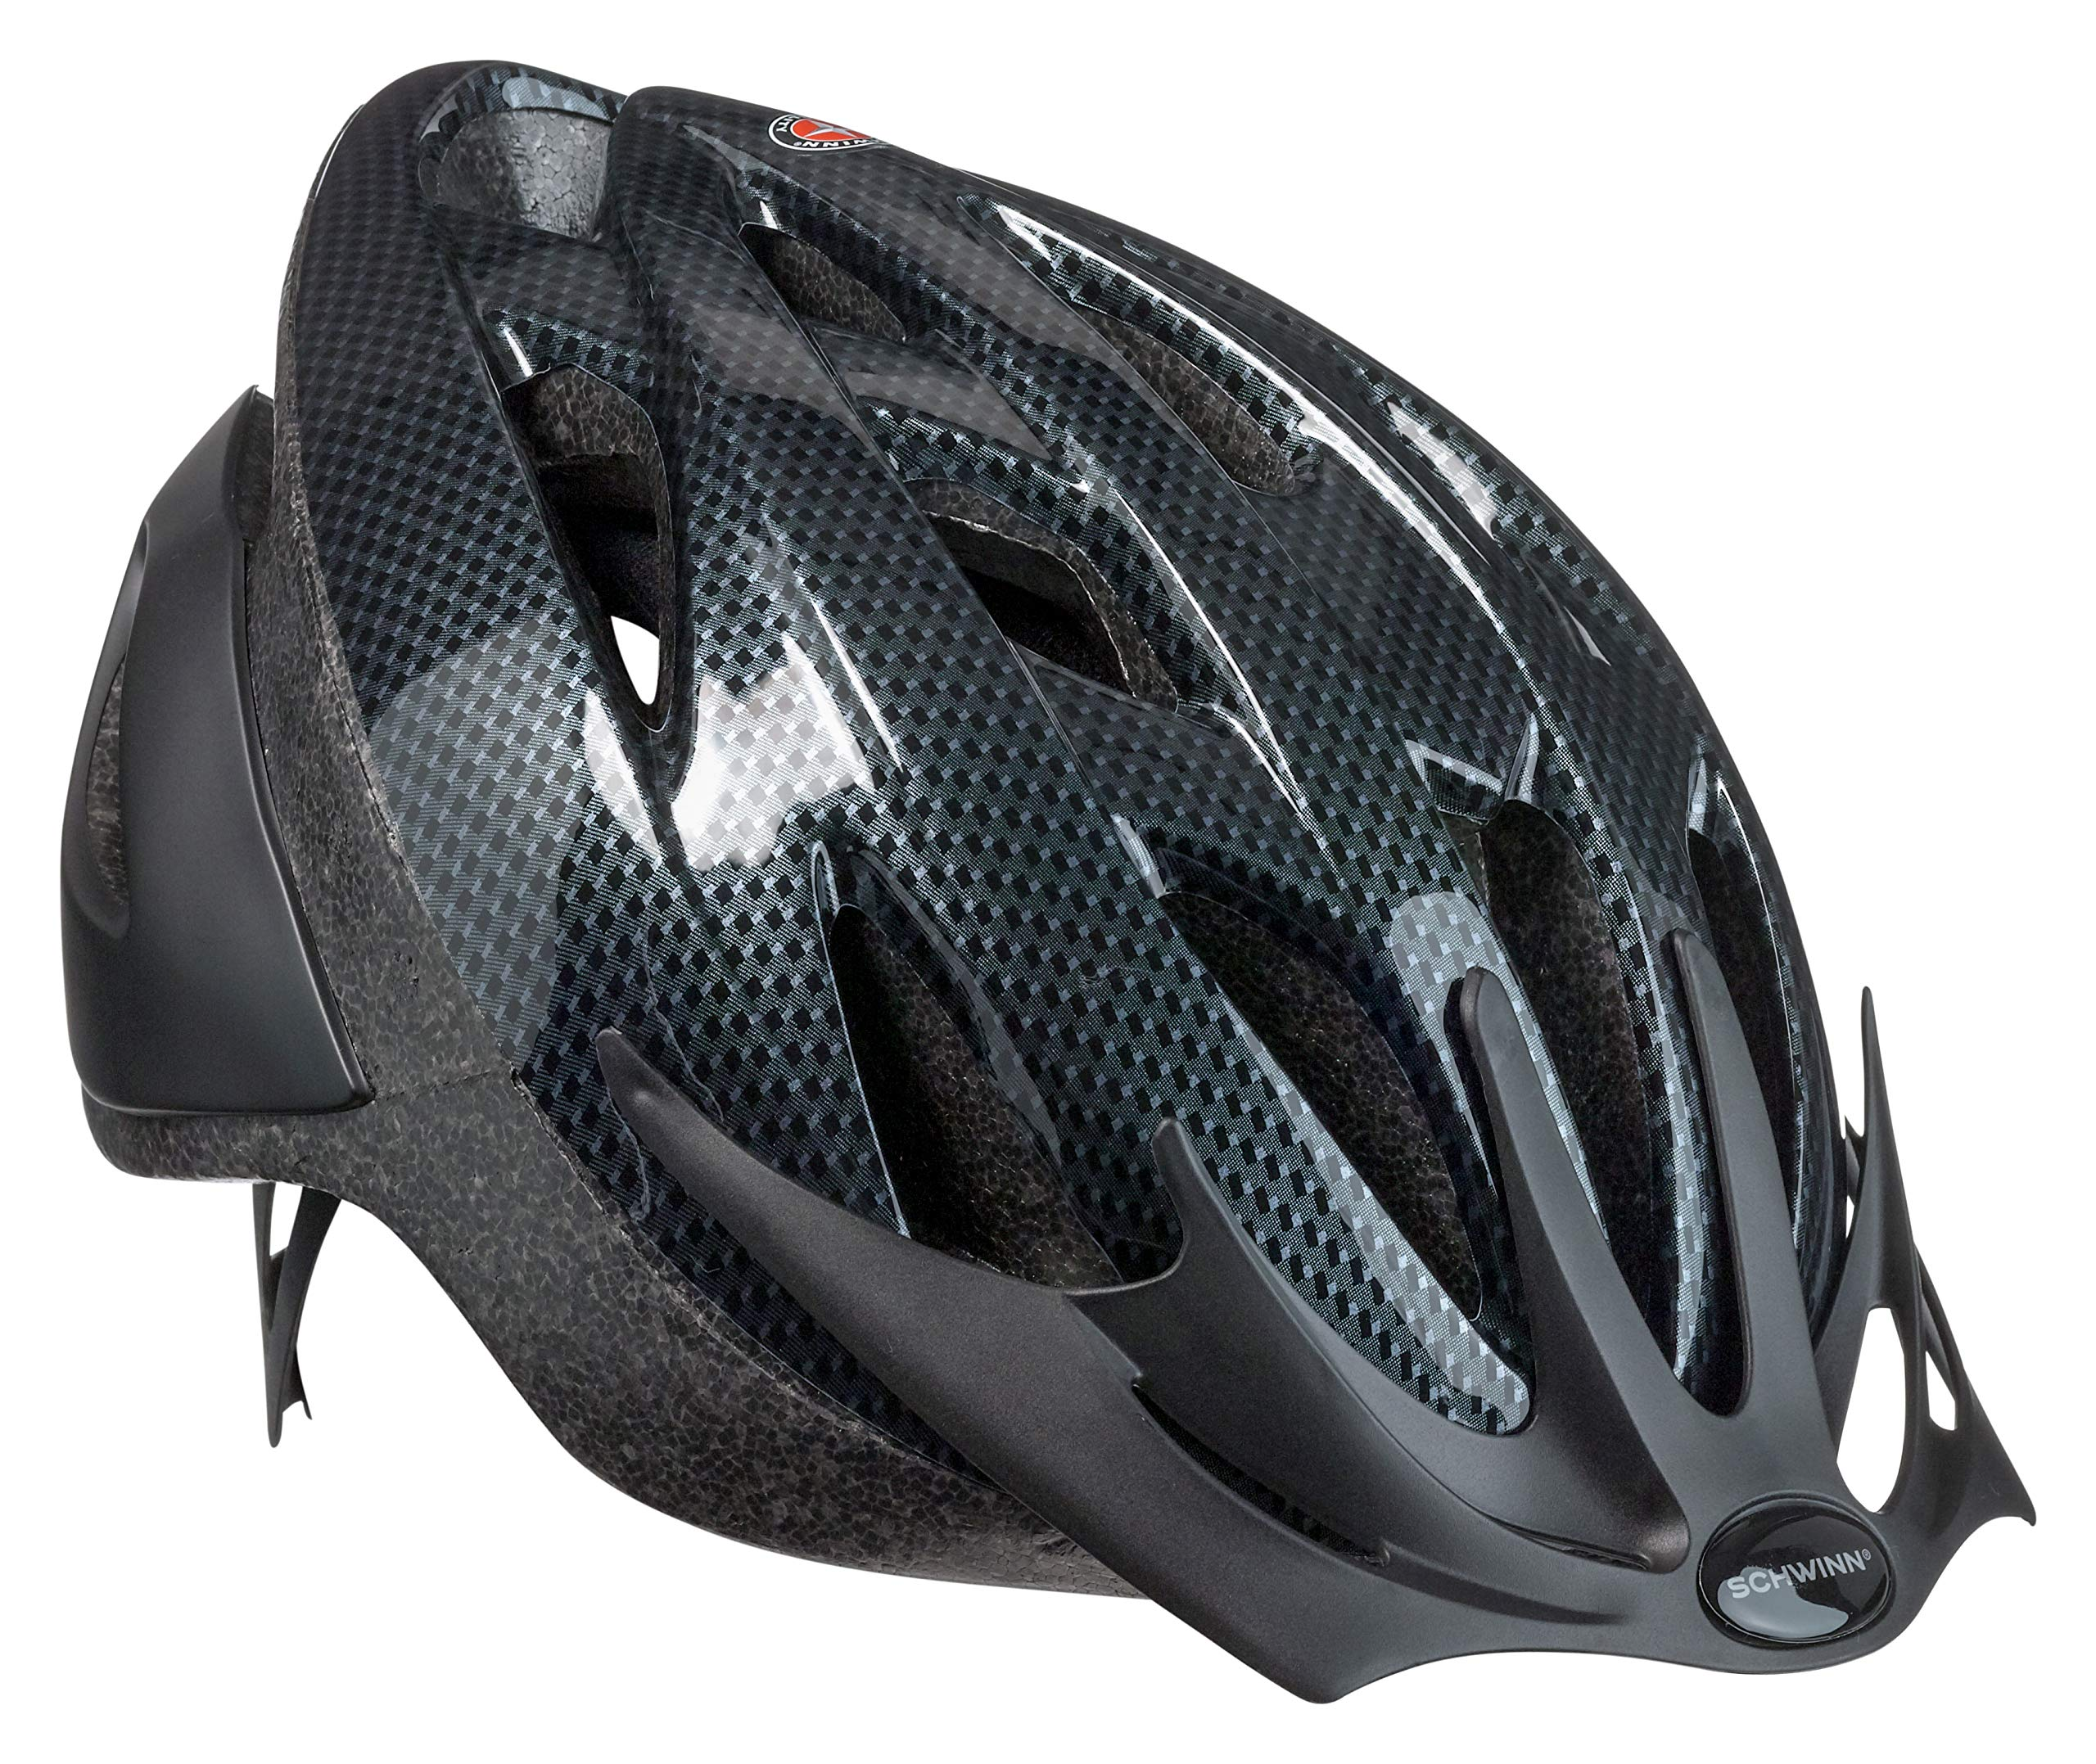 Schwinn Thrasher Lightweight Microshell Bicycle Helmet Featuring 360 Degree Comfort System with Dial-Fit Adjustment, Sizes for Adults, Youth, and Children product image